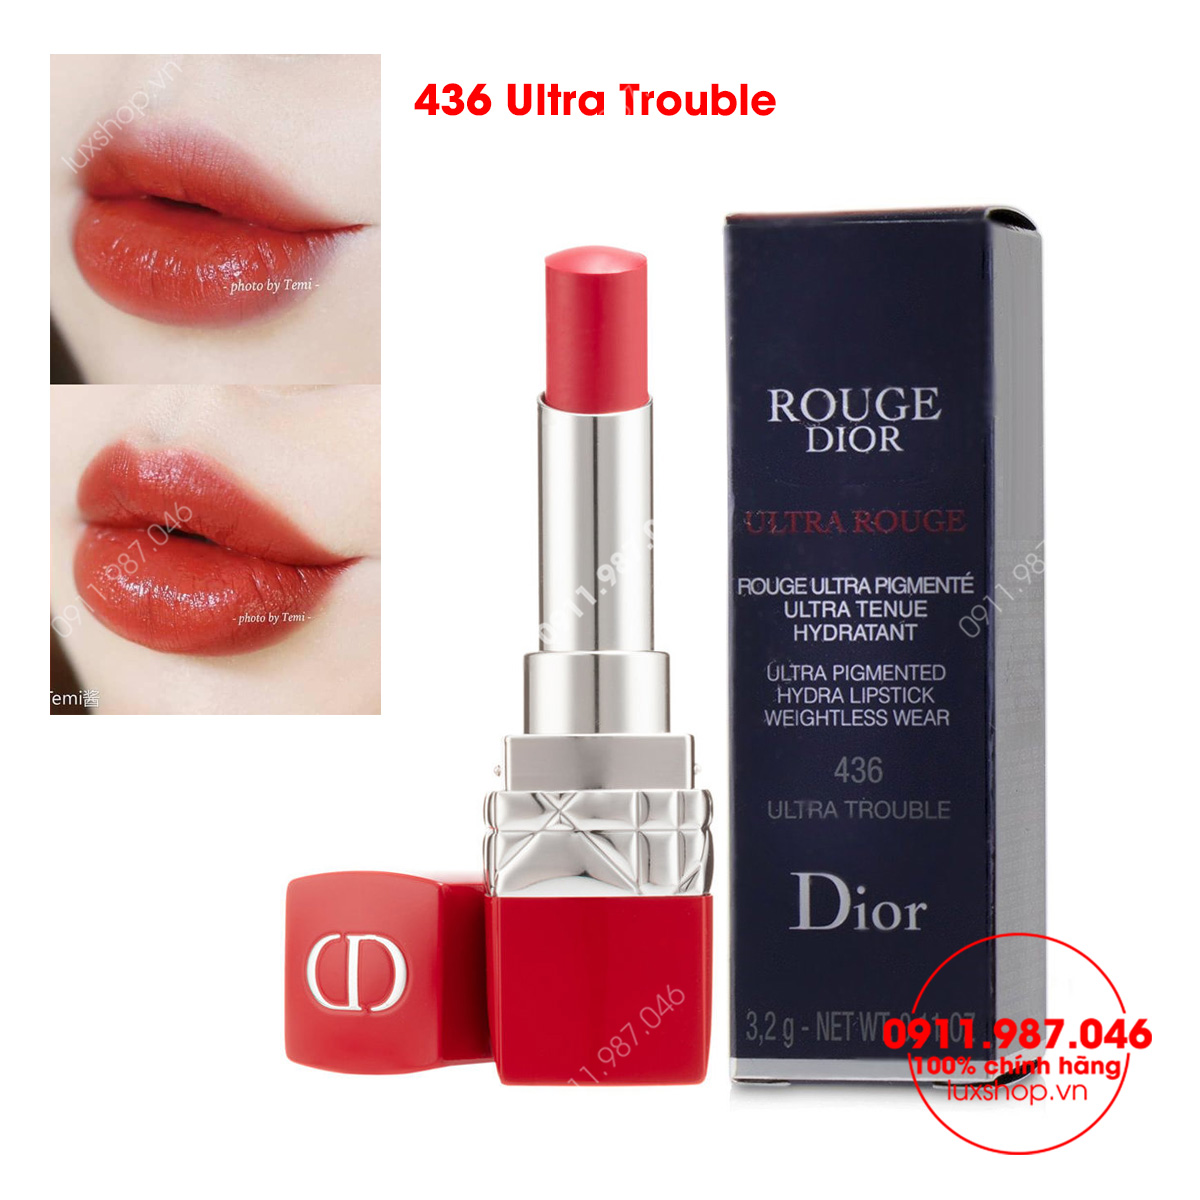 son-moi-dior-rouge-436-ultra-trouble-mau-cam-dat-chinh-hang-phap-vo-do-l20614